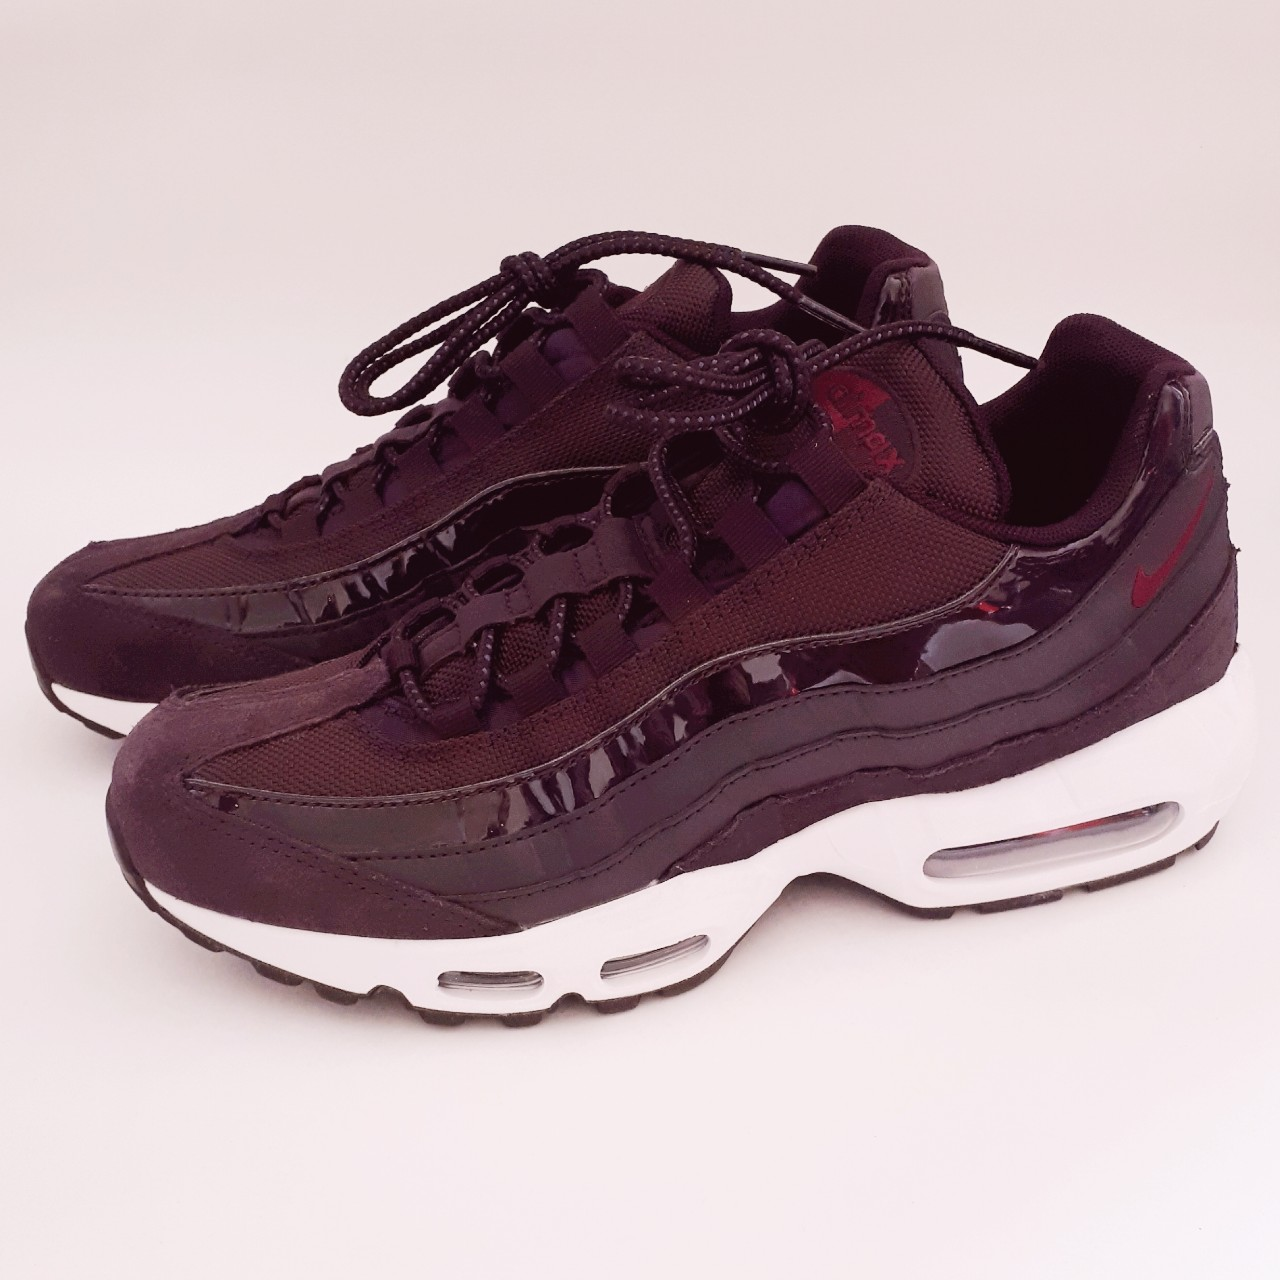 Wmns Nike Air Max 95 Port Wine Bordeaux White. Size